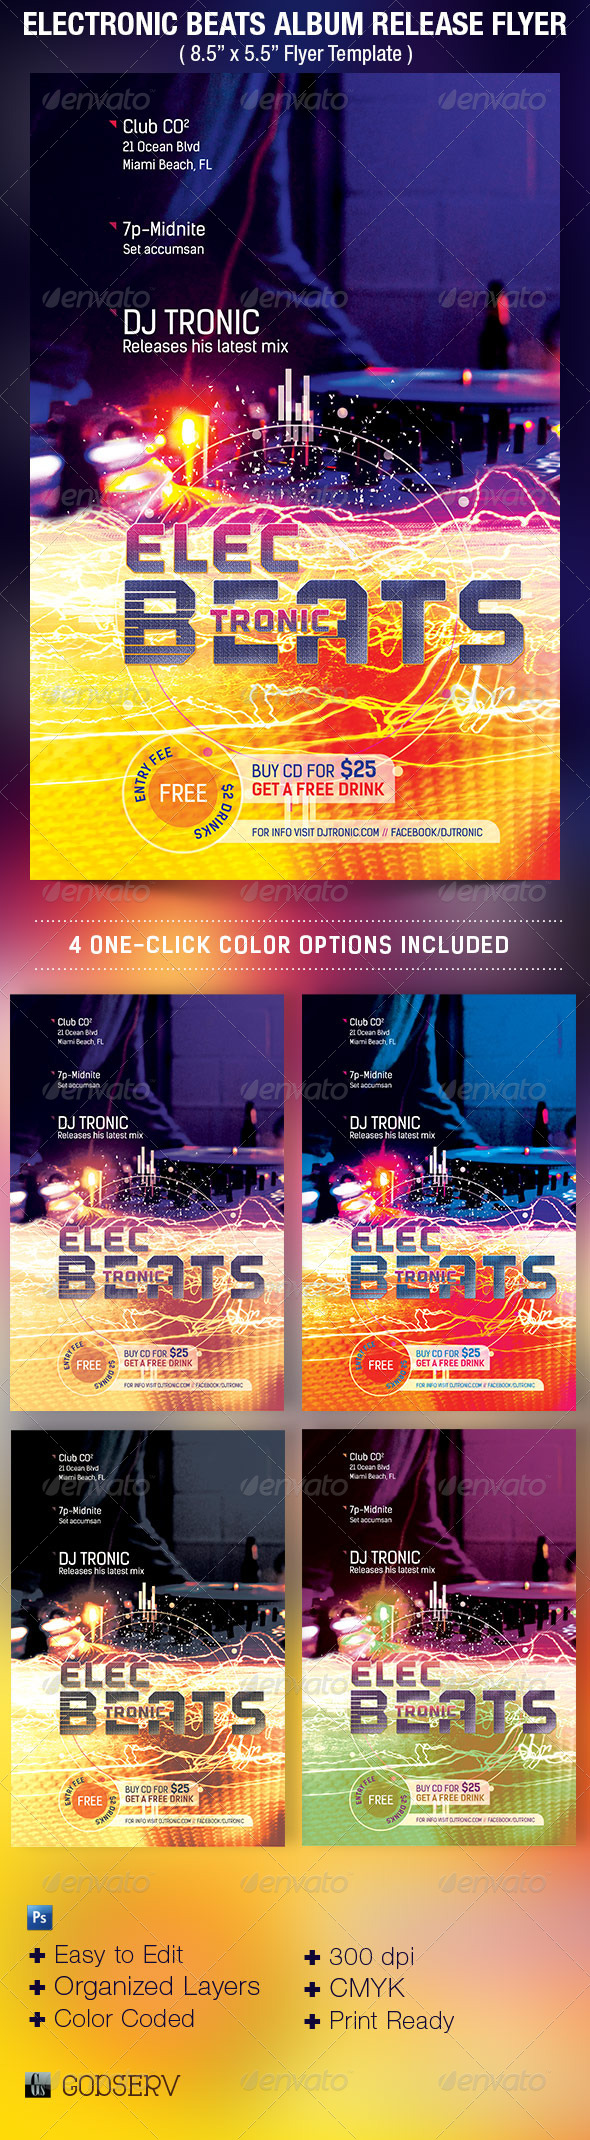 GraphicRiver Electronic Beats Album Release Flyer Template 5182117